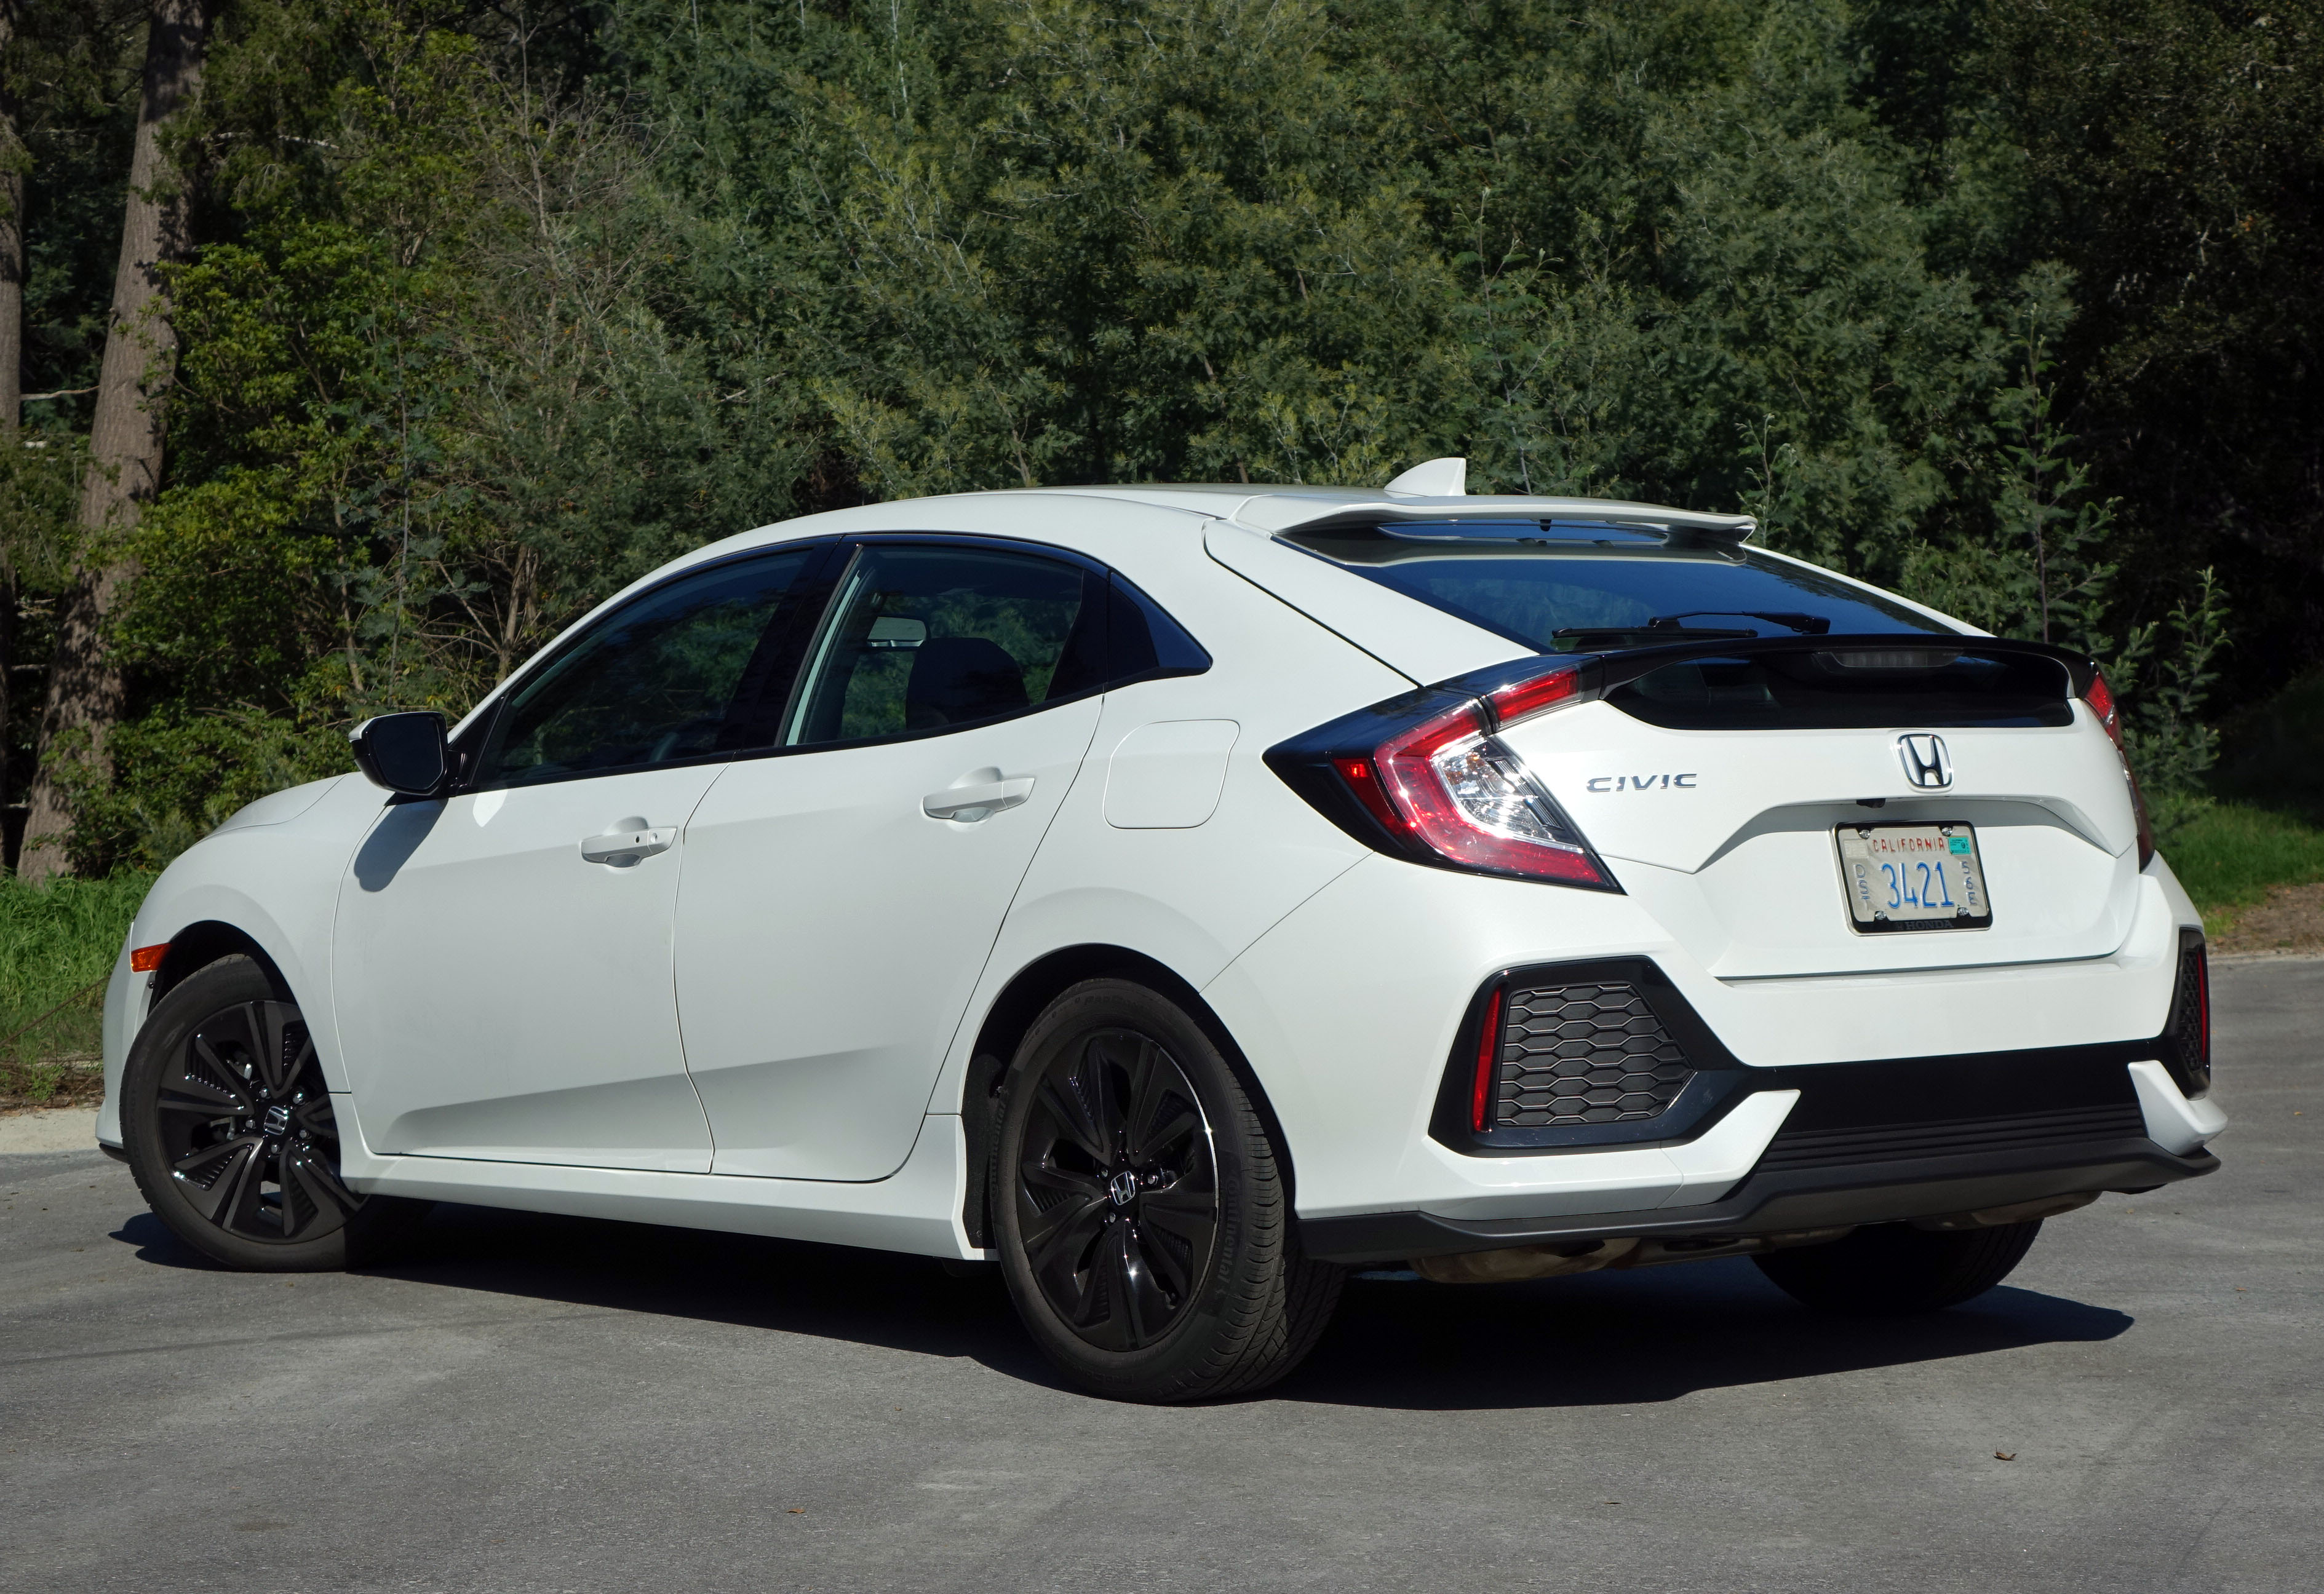 2017 Honda Civic Hatchback first drive: Doing more with less